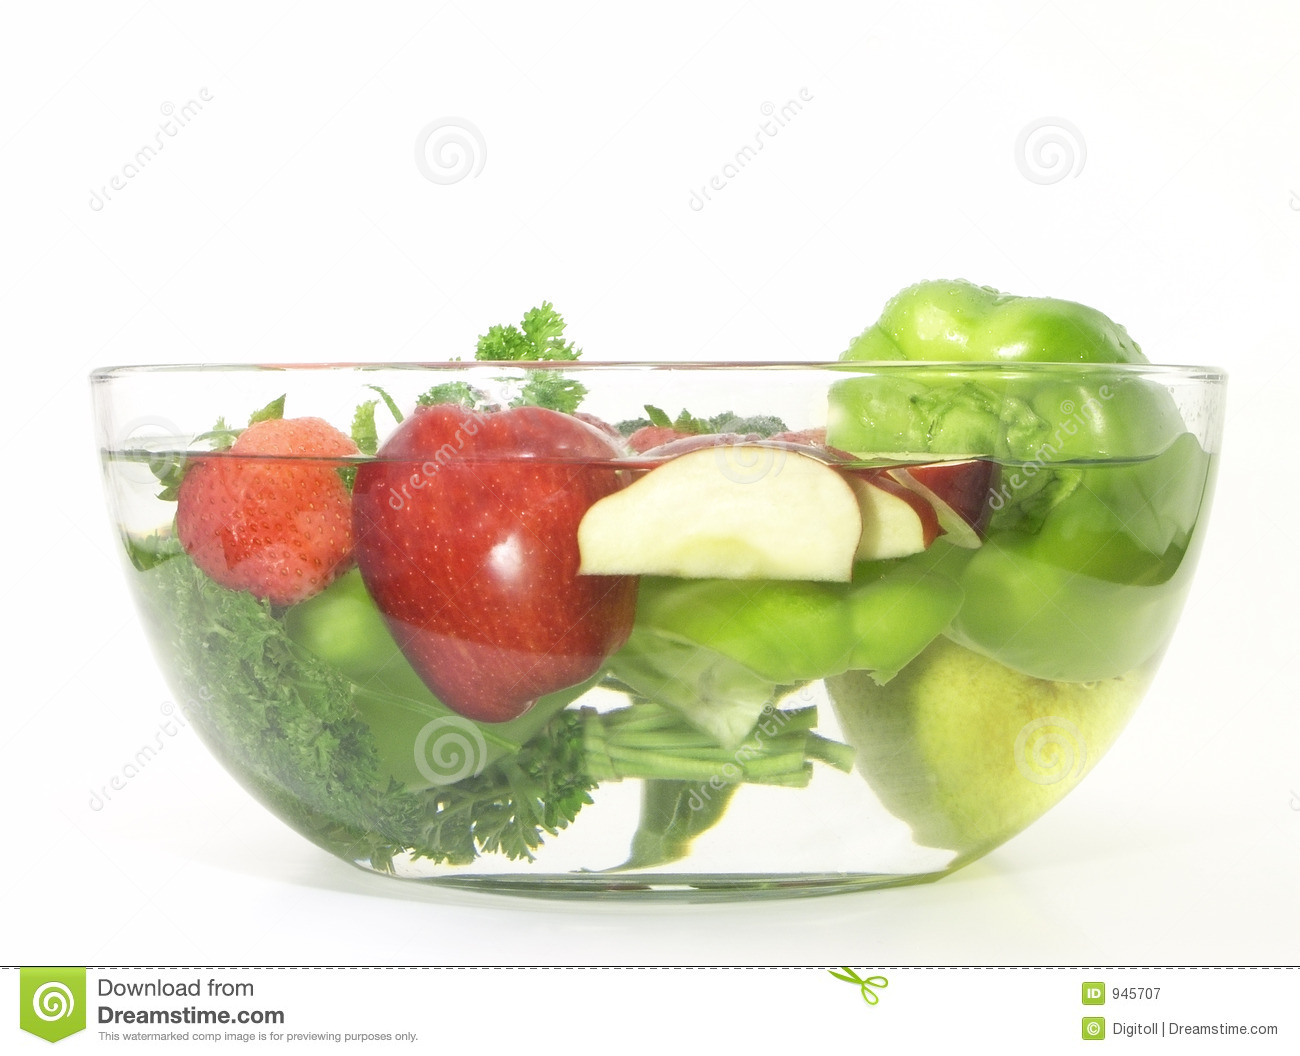 Vegetables And Fruits In A Clear Bowl 3 Of 5 Stock Image